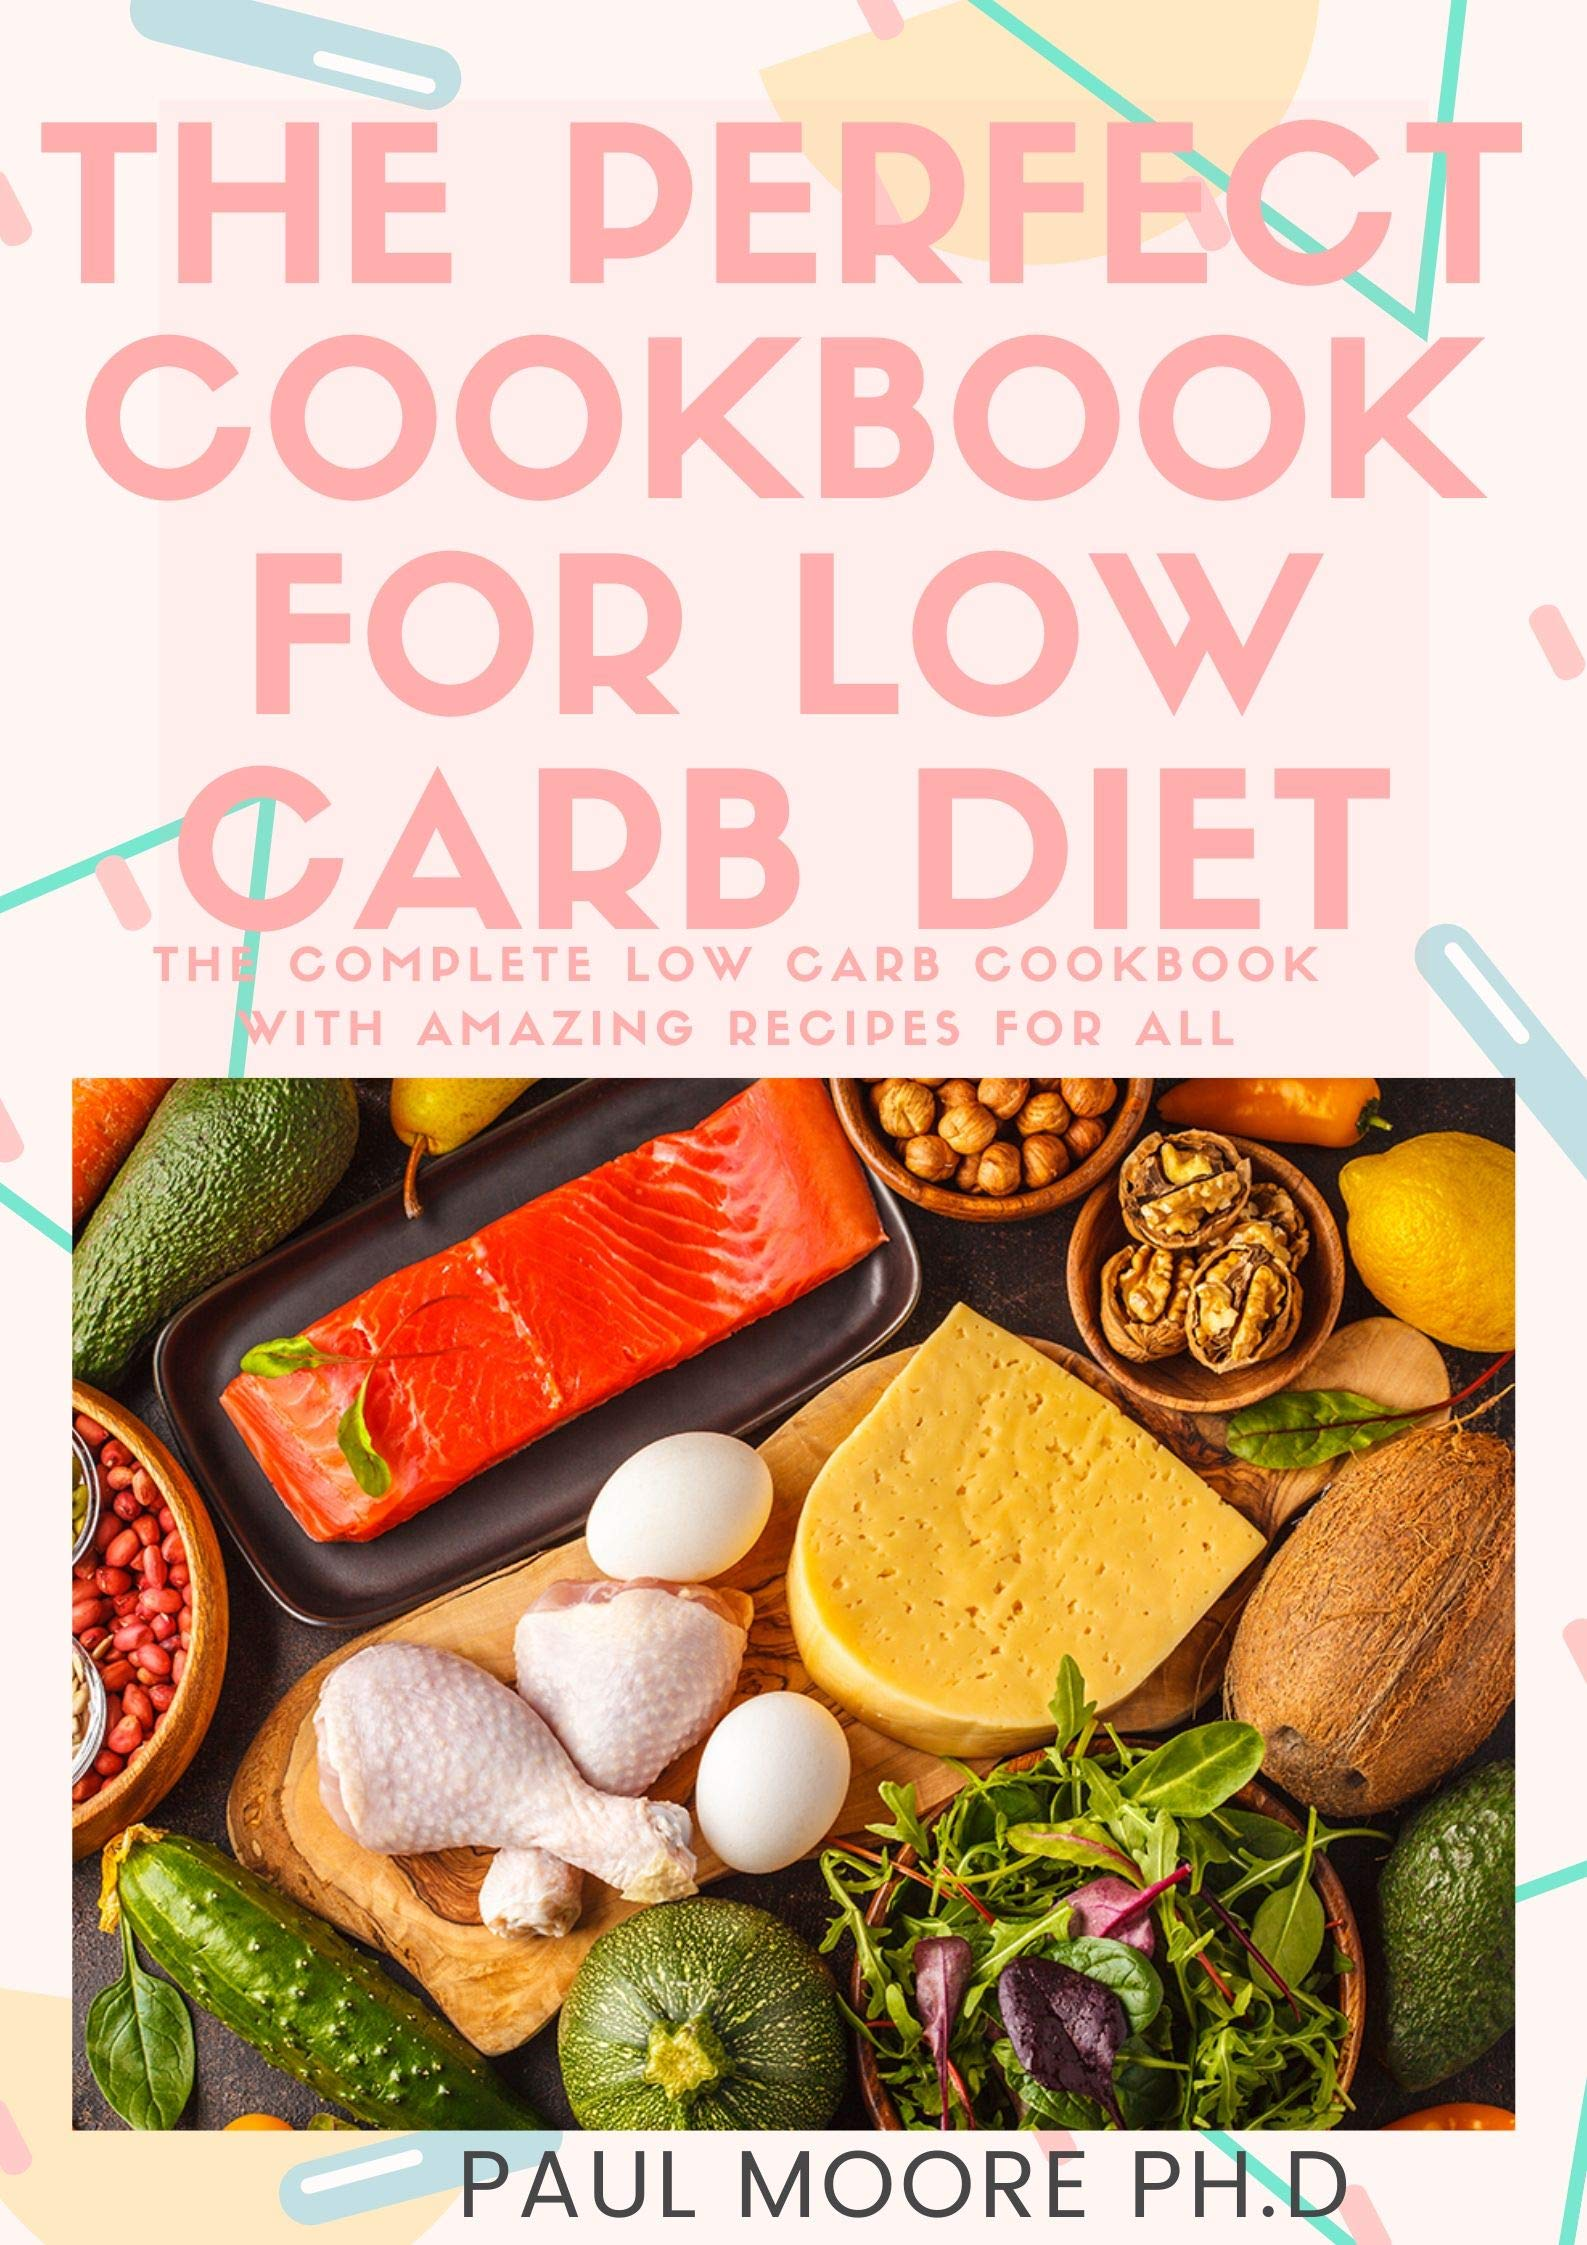 THE PERFECT COOKBOOK FOR LOW CARB DIET: The Complete Low Carb Cookbook With Amazing Recipes For All